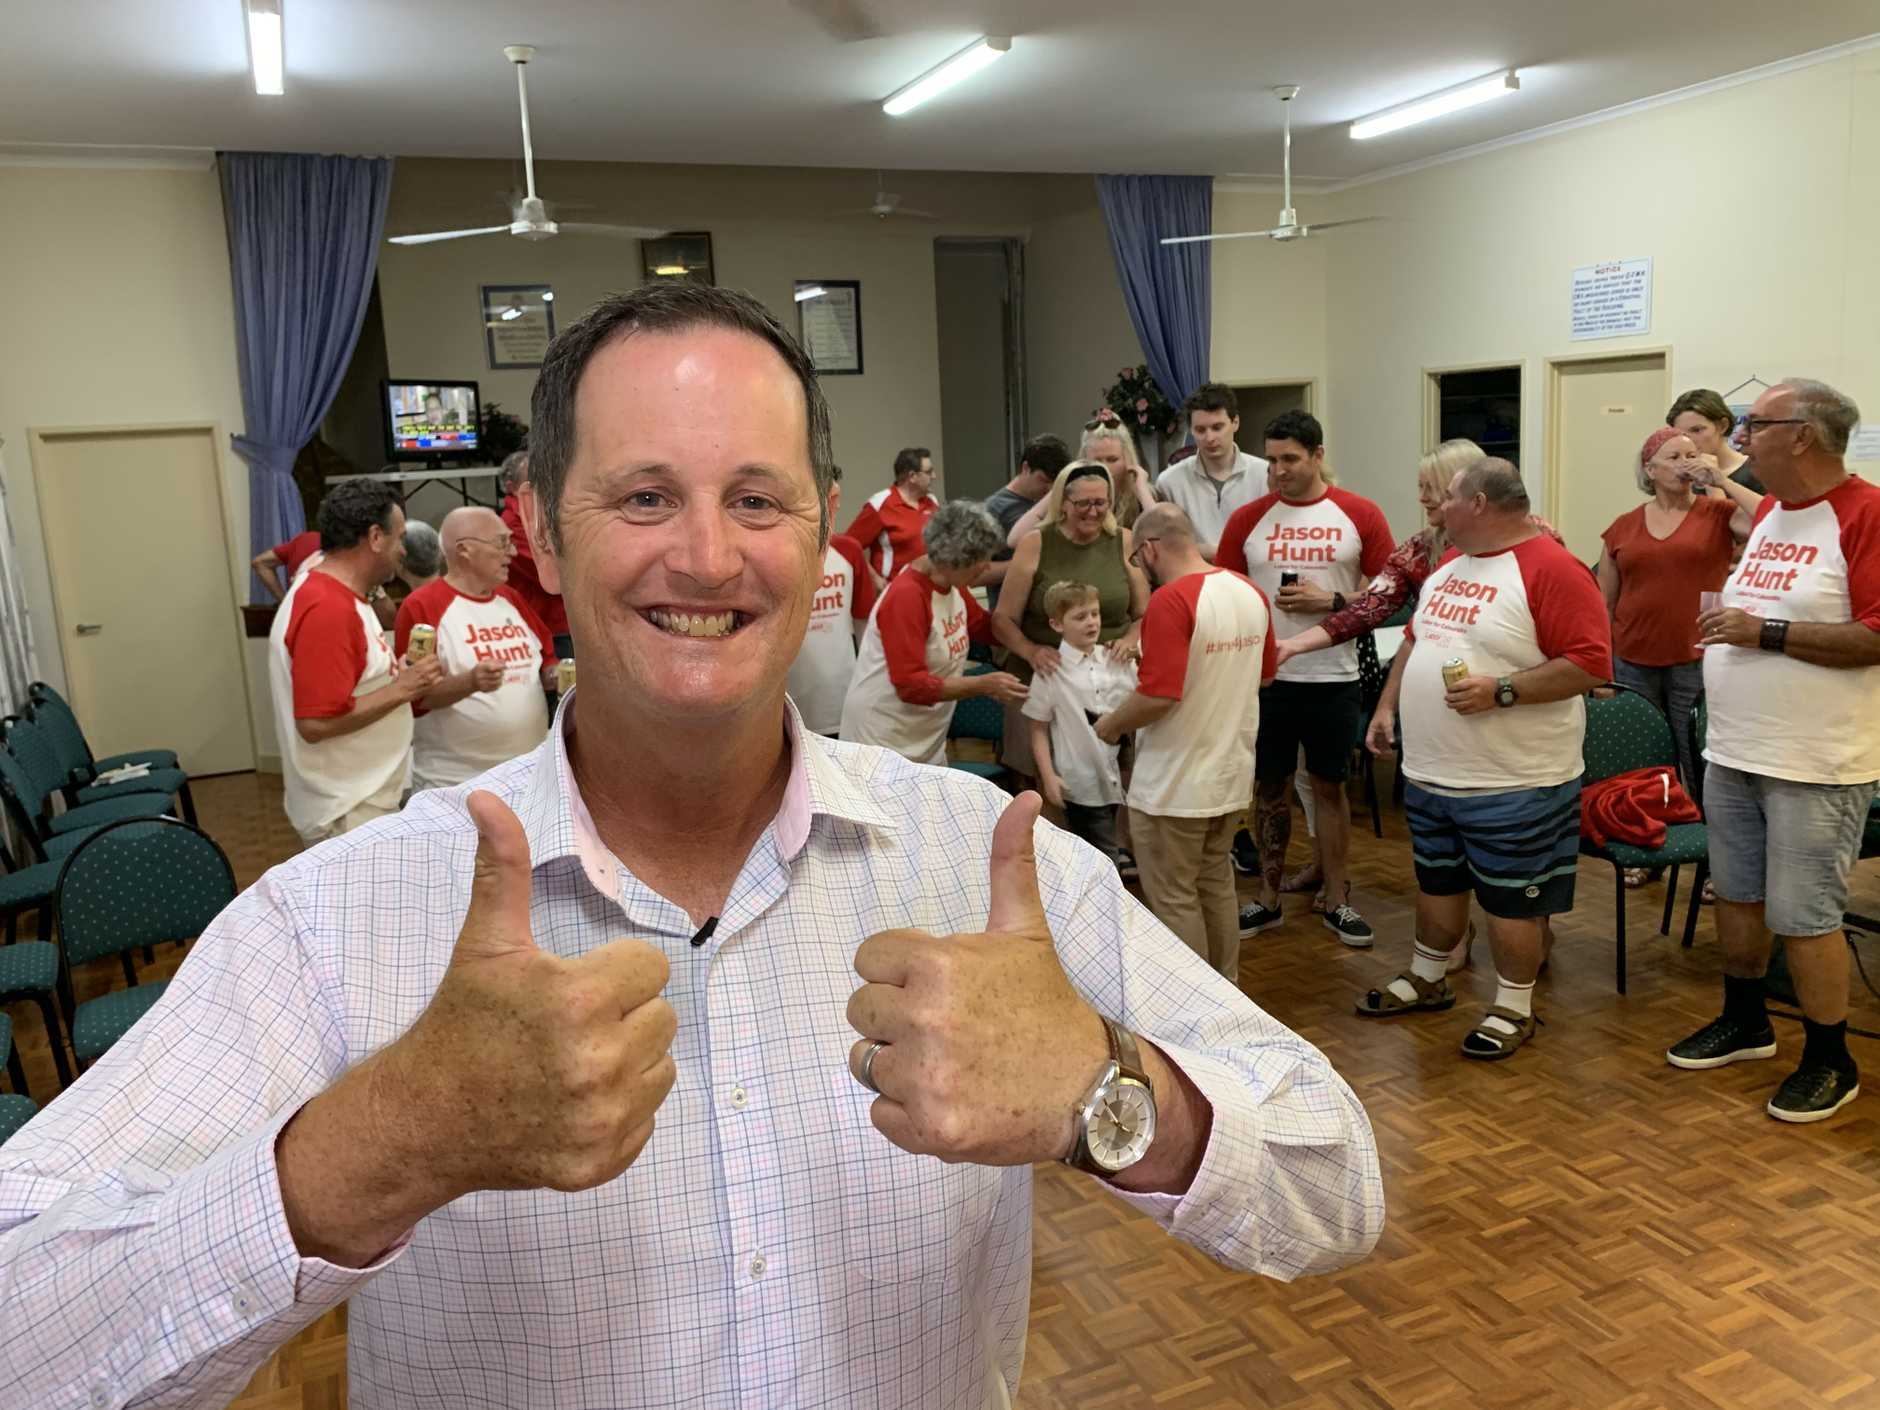 Jason Hunt at Caloundra state election celebrations.